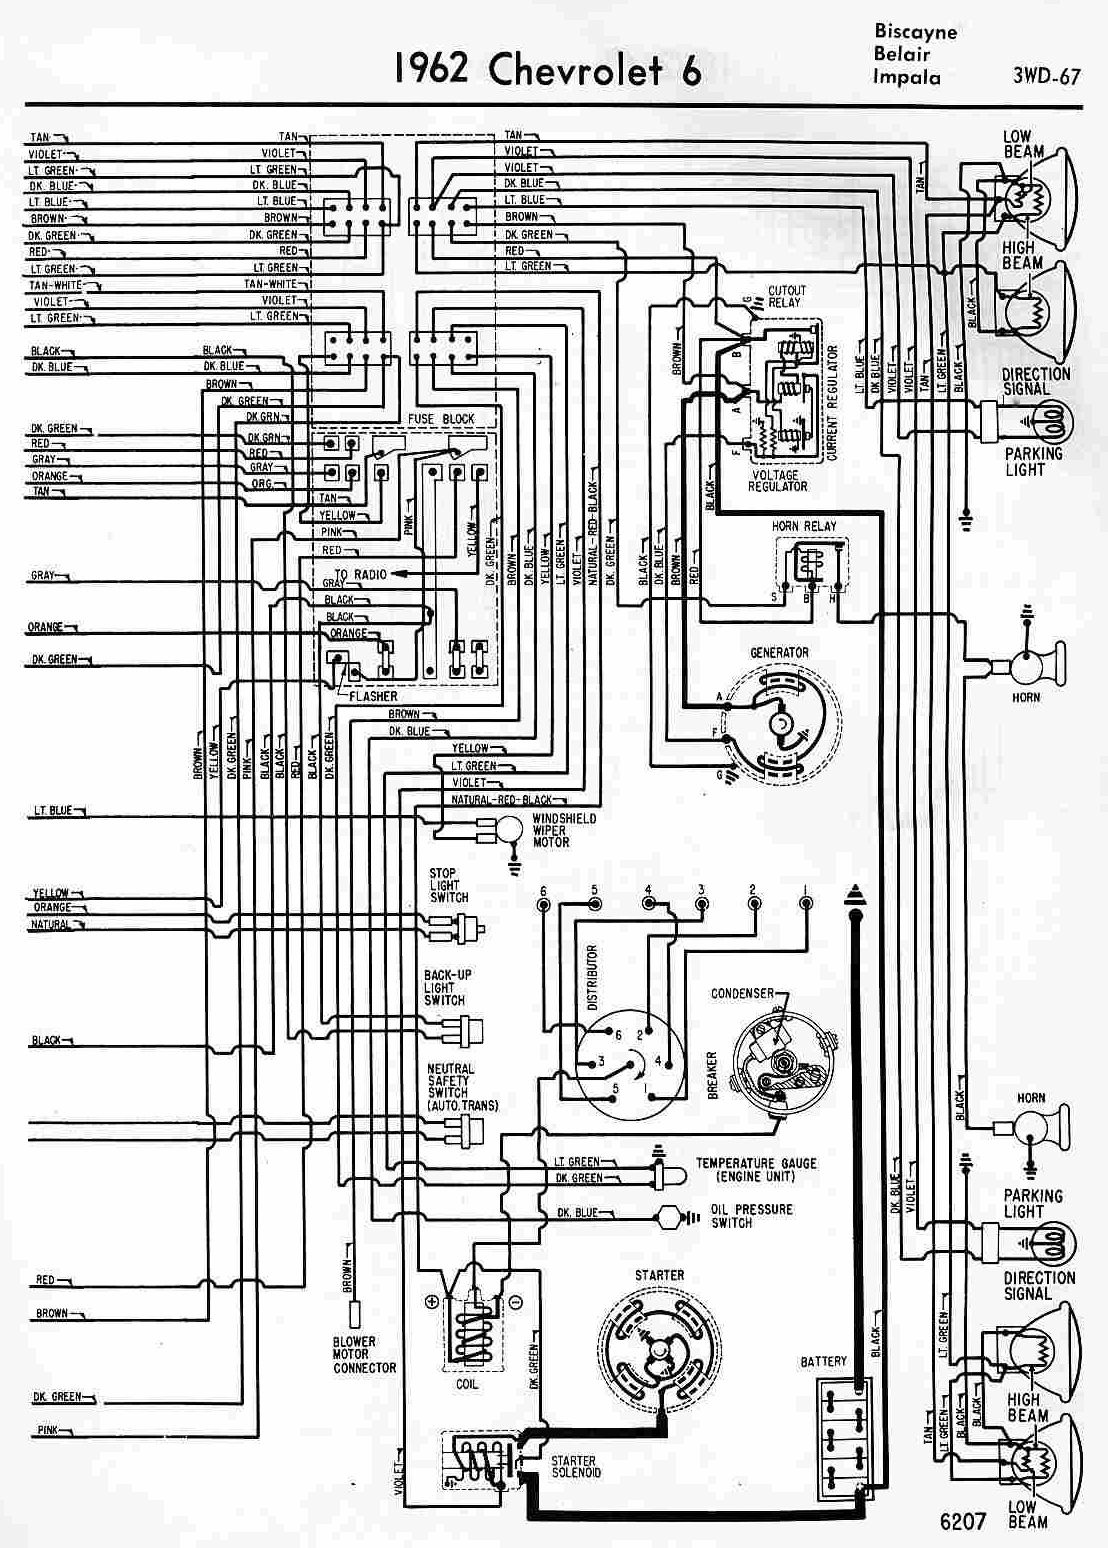 1962 f100 wiring diagram 1962 ford f100 wiring diagram